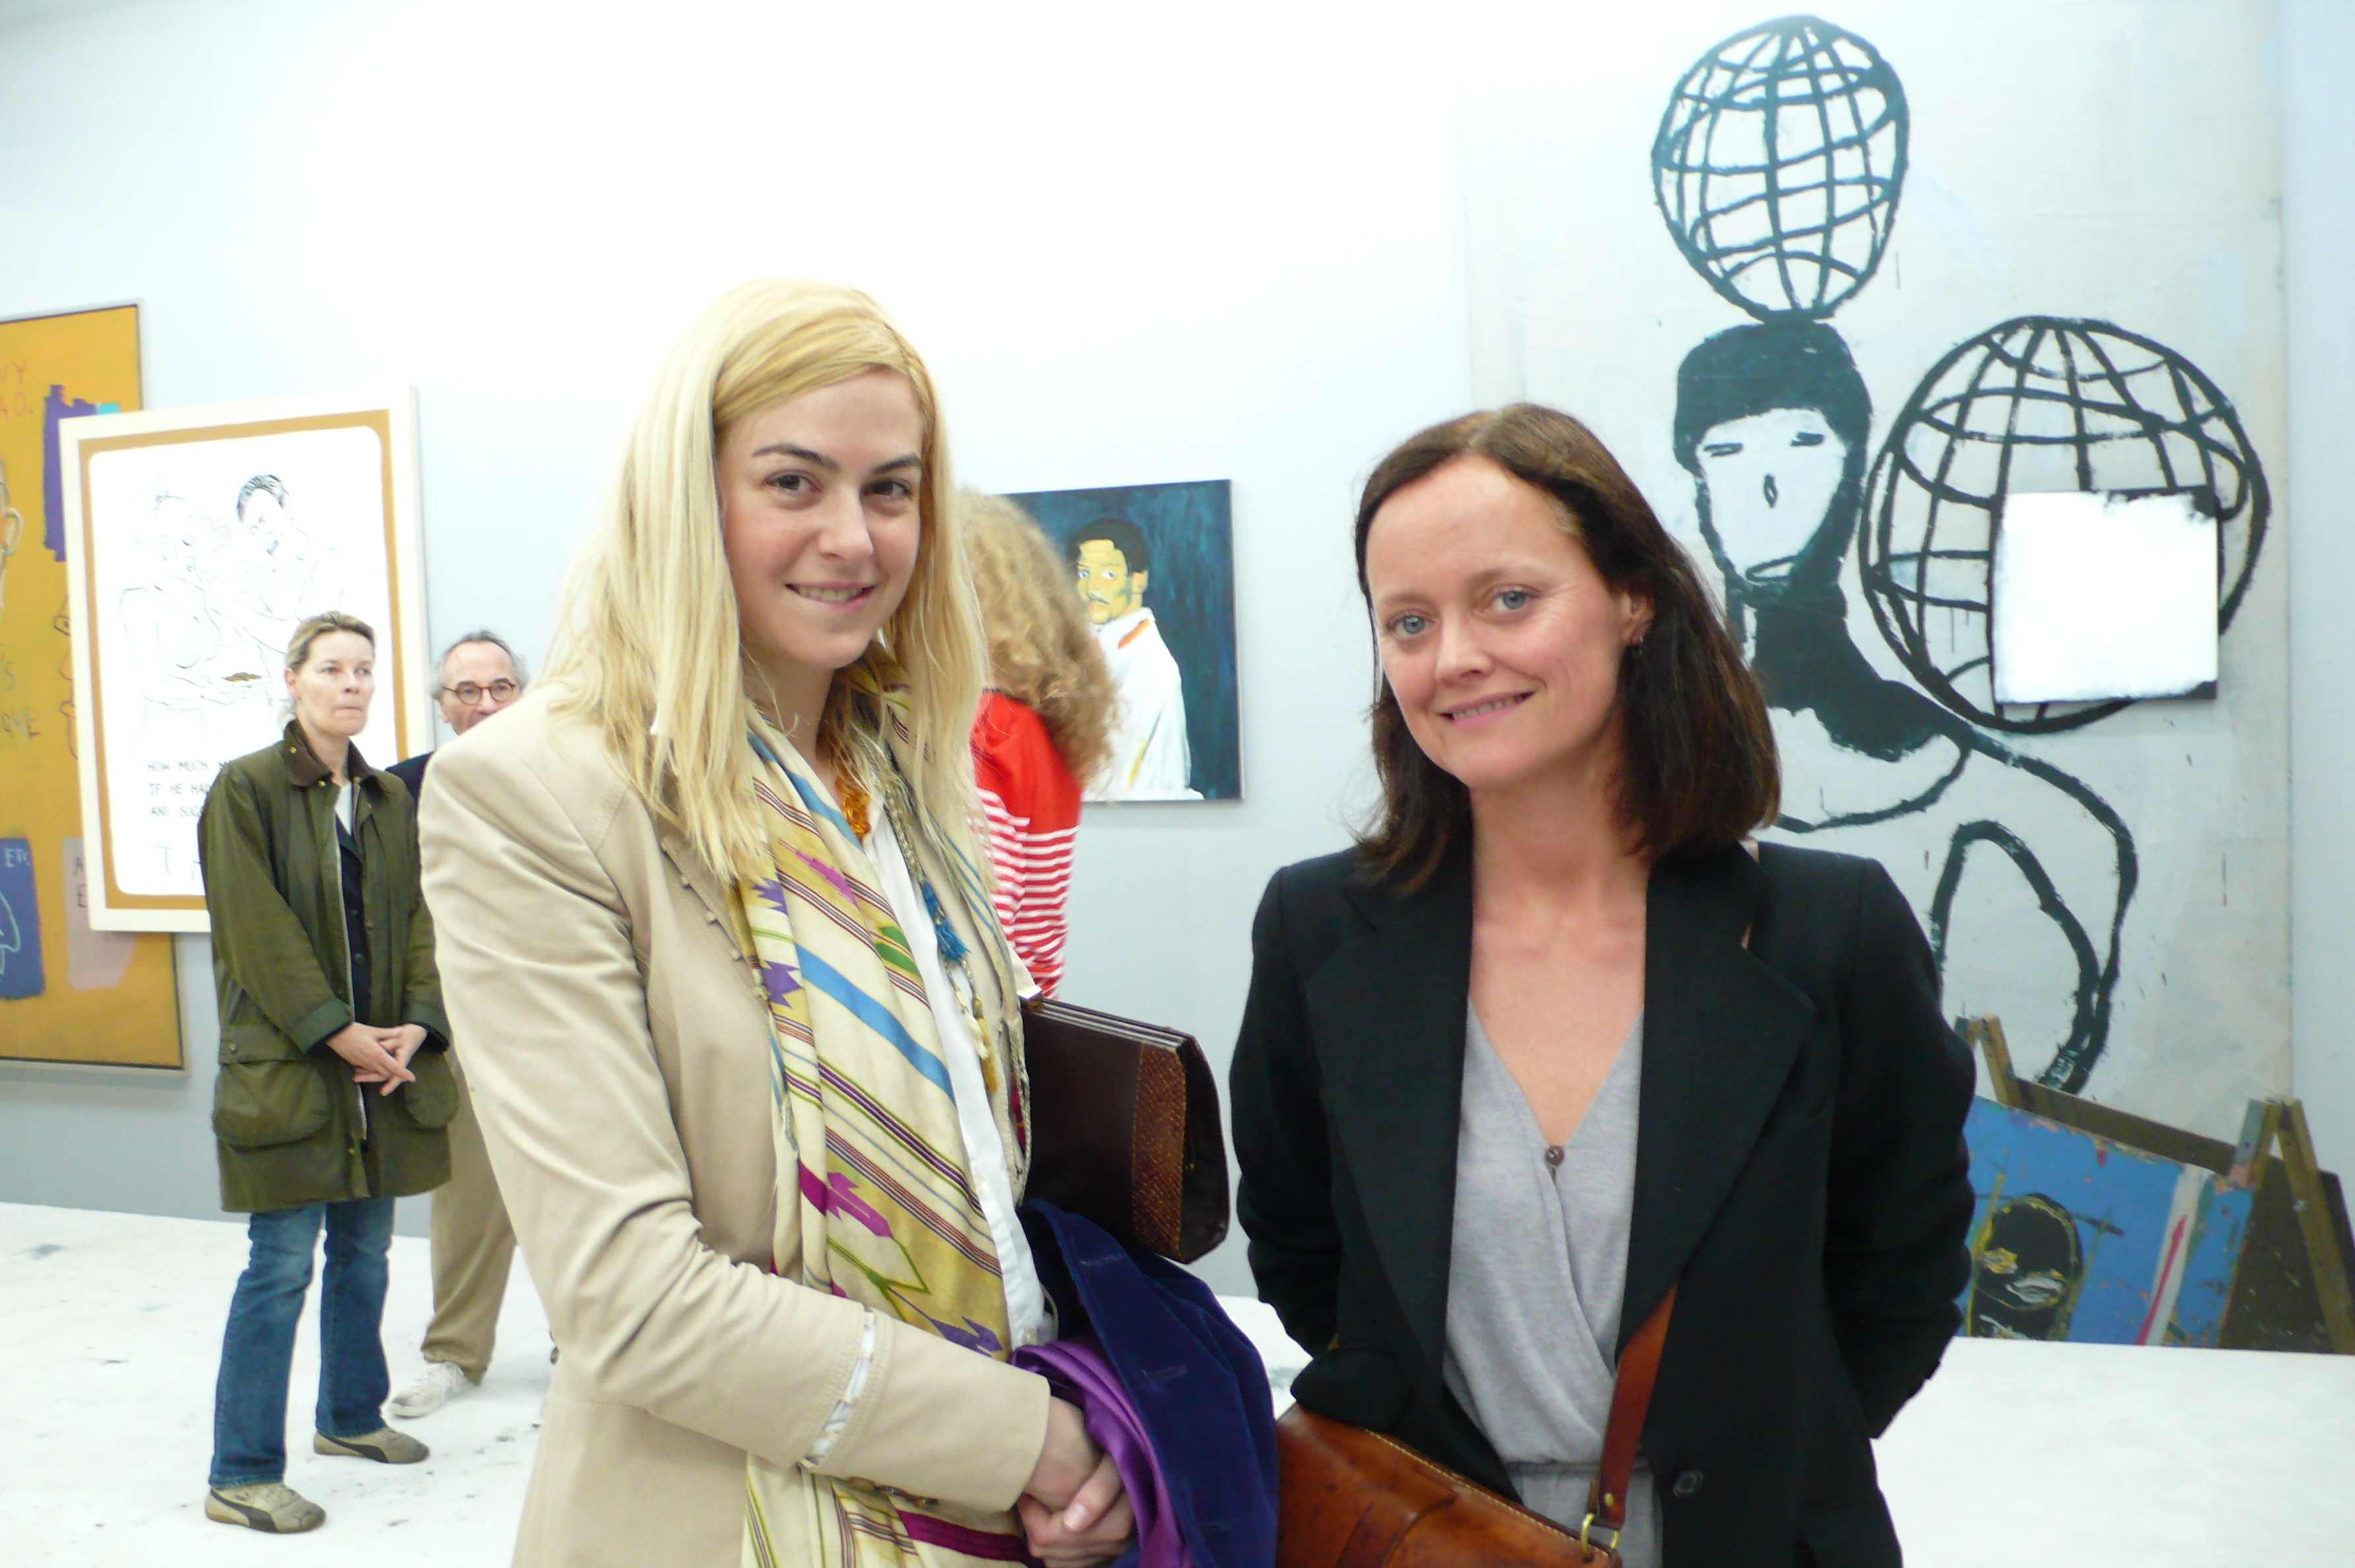 Melissa Bent and Emma Reeves looking lovely, via Art Observed